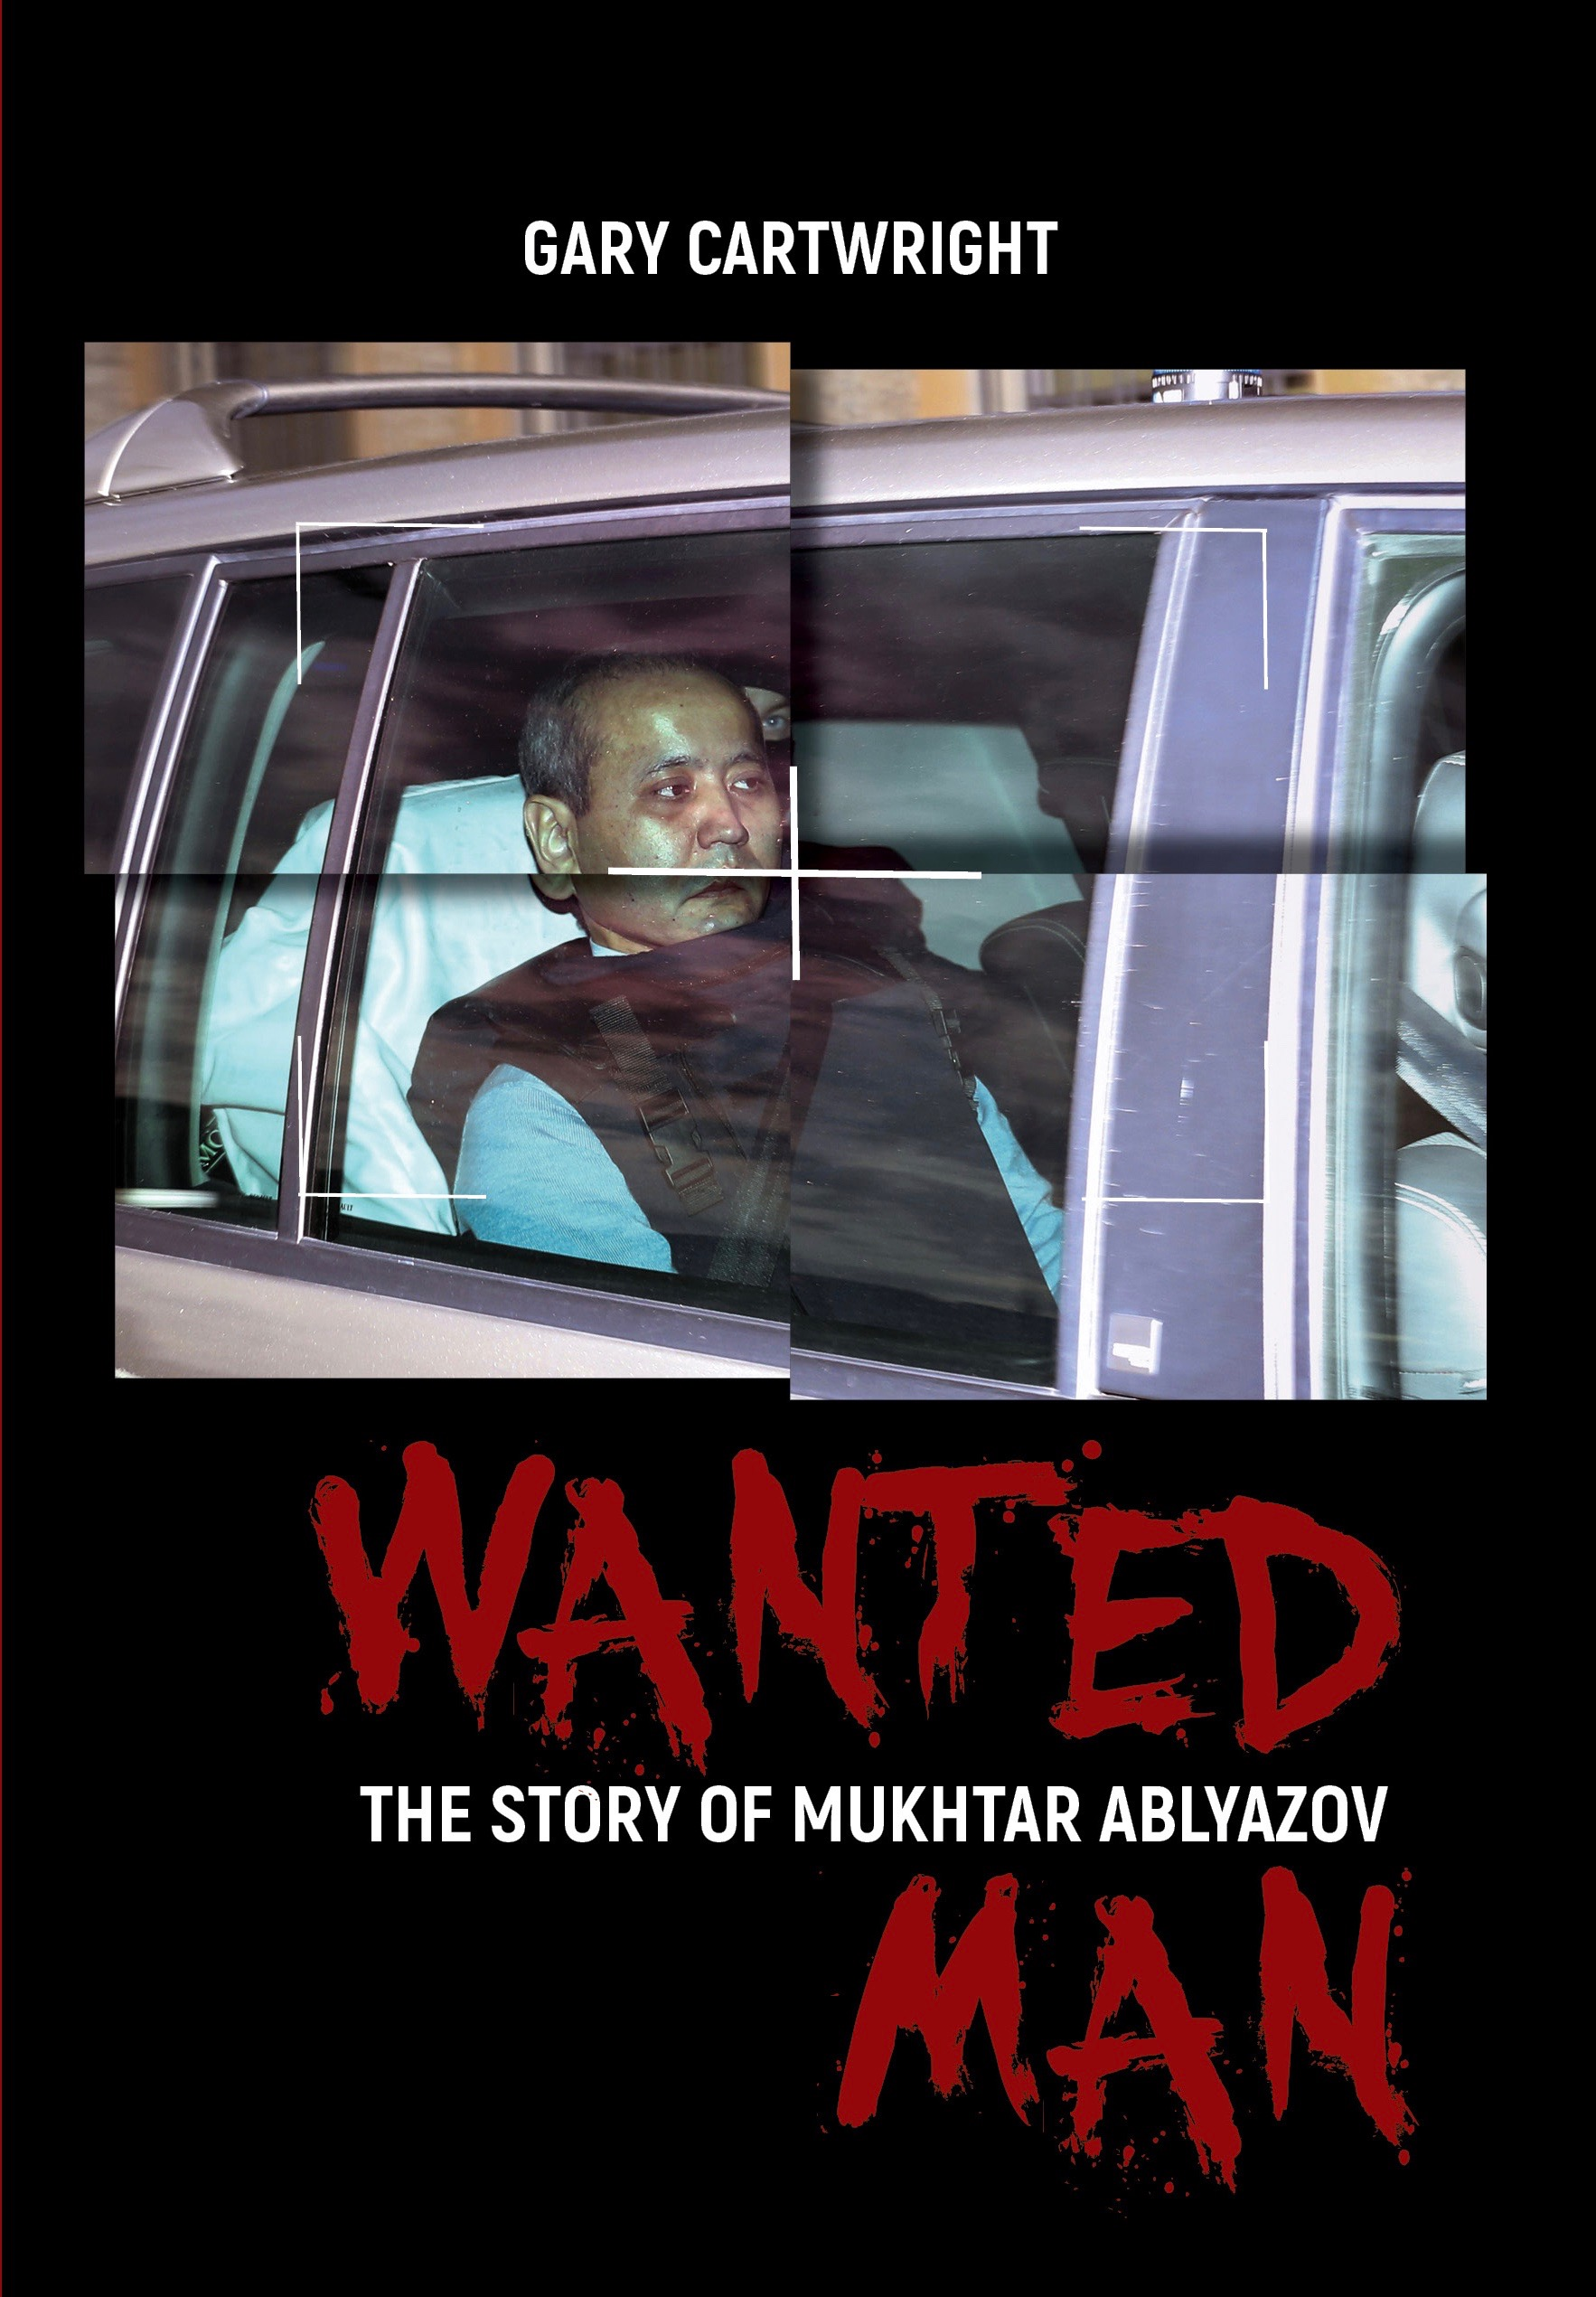 The story of Mukhtar Ablyazov